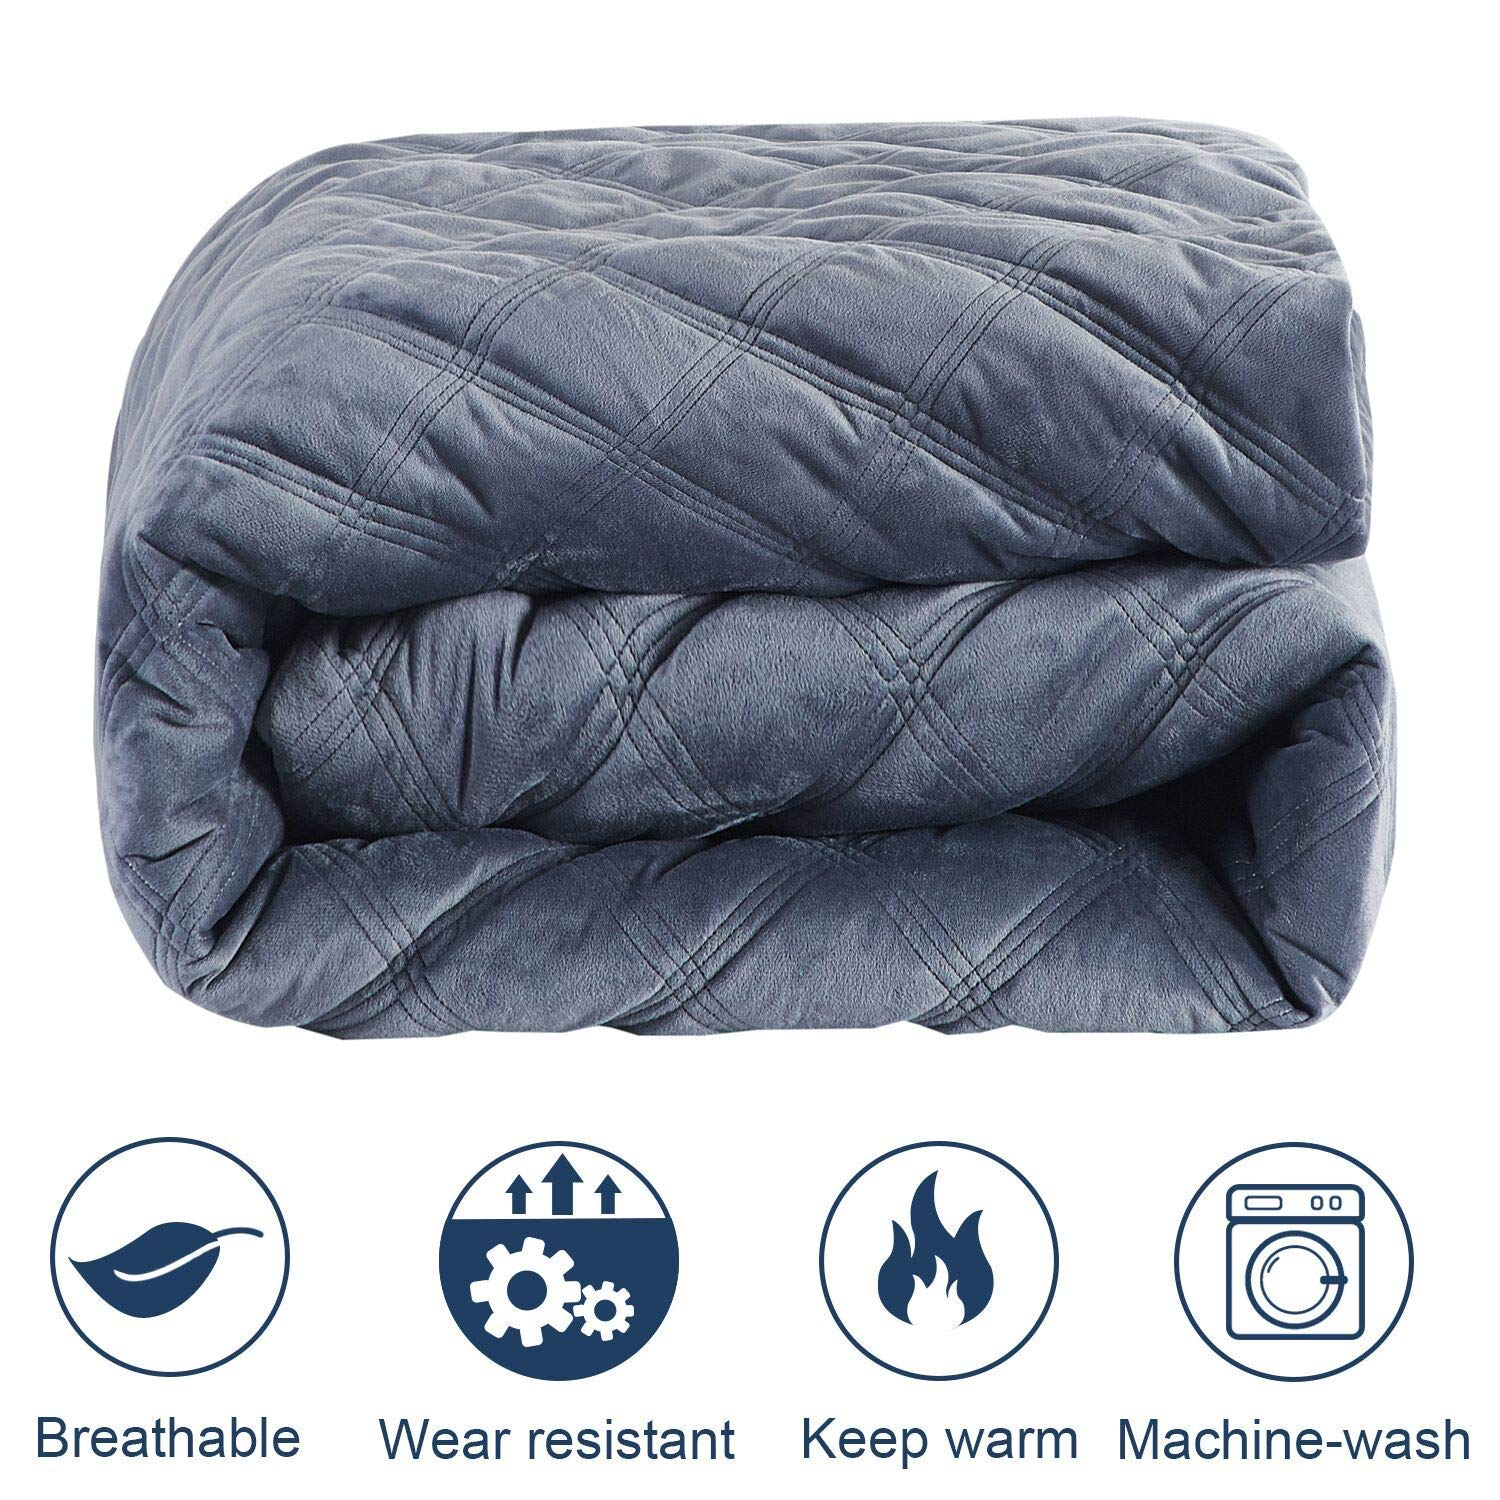 Weighted Blanket with Cover (7 lbs for Kids, 41''x60''), Kids Weighted Blanket Heavy Blanket - Great Comfort for Children, 100% Premium Cotton with Glass Beads, Gray